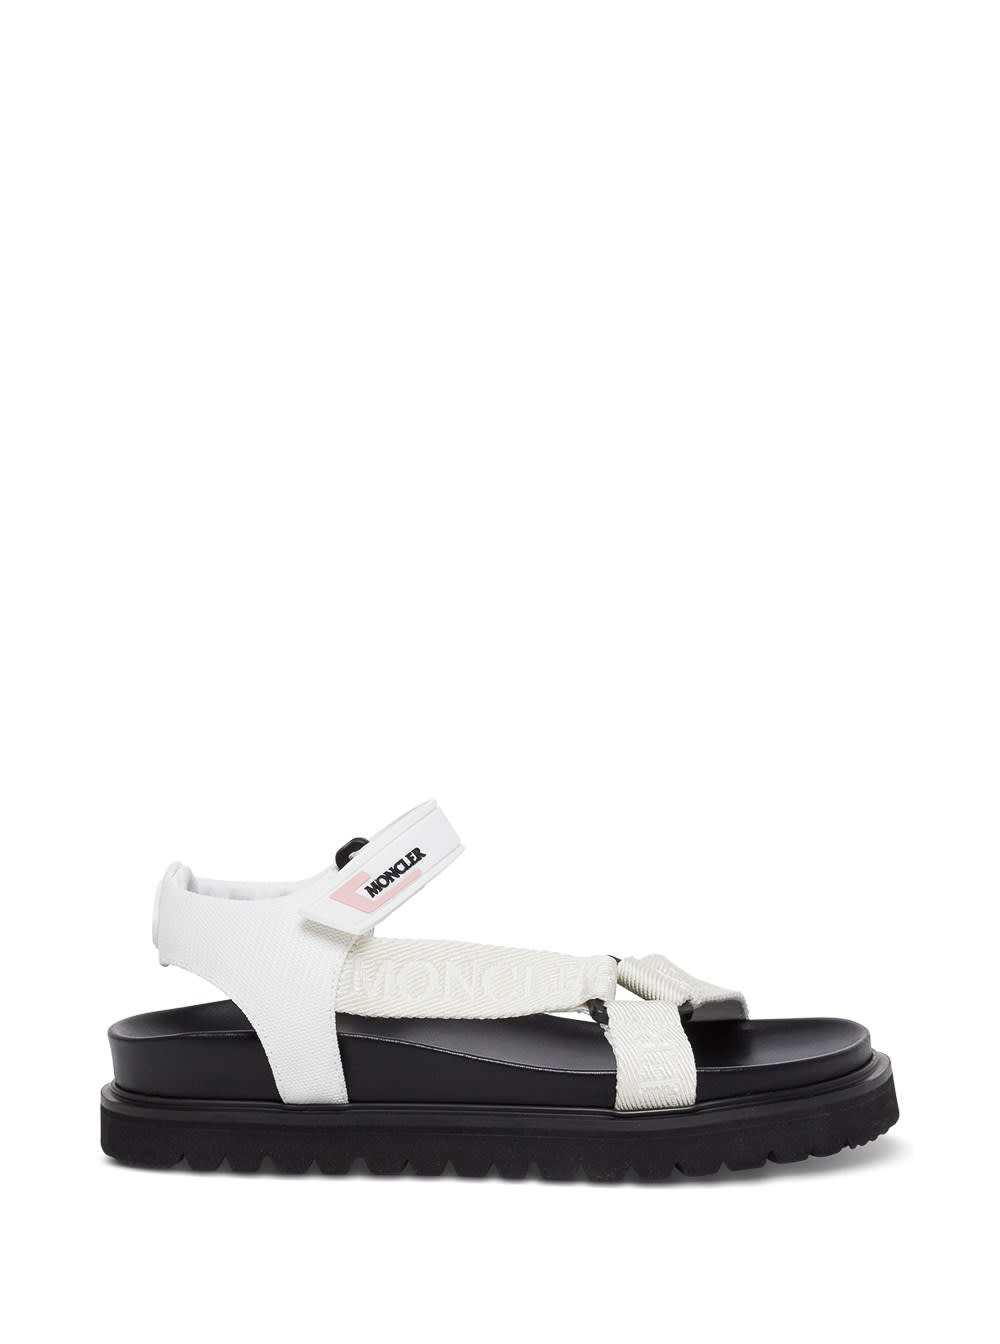 Moncler FLAVIA WHITE SANDALS WITH LOGO